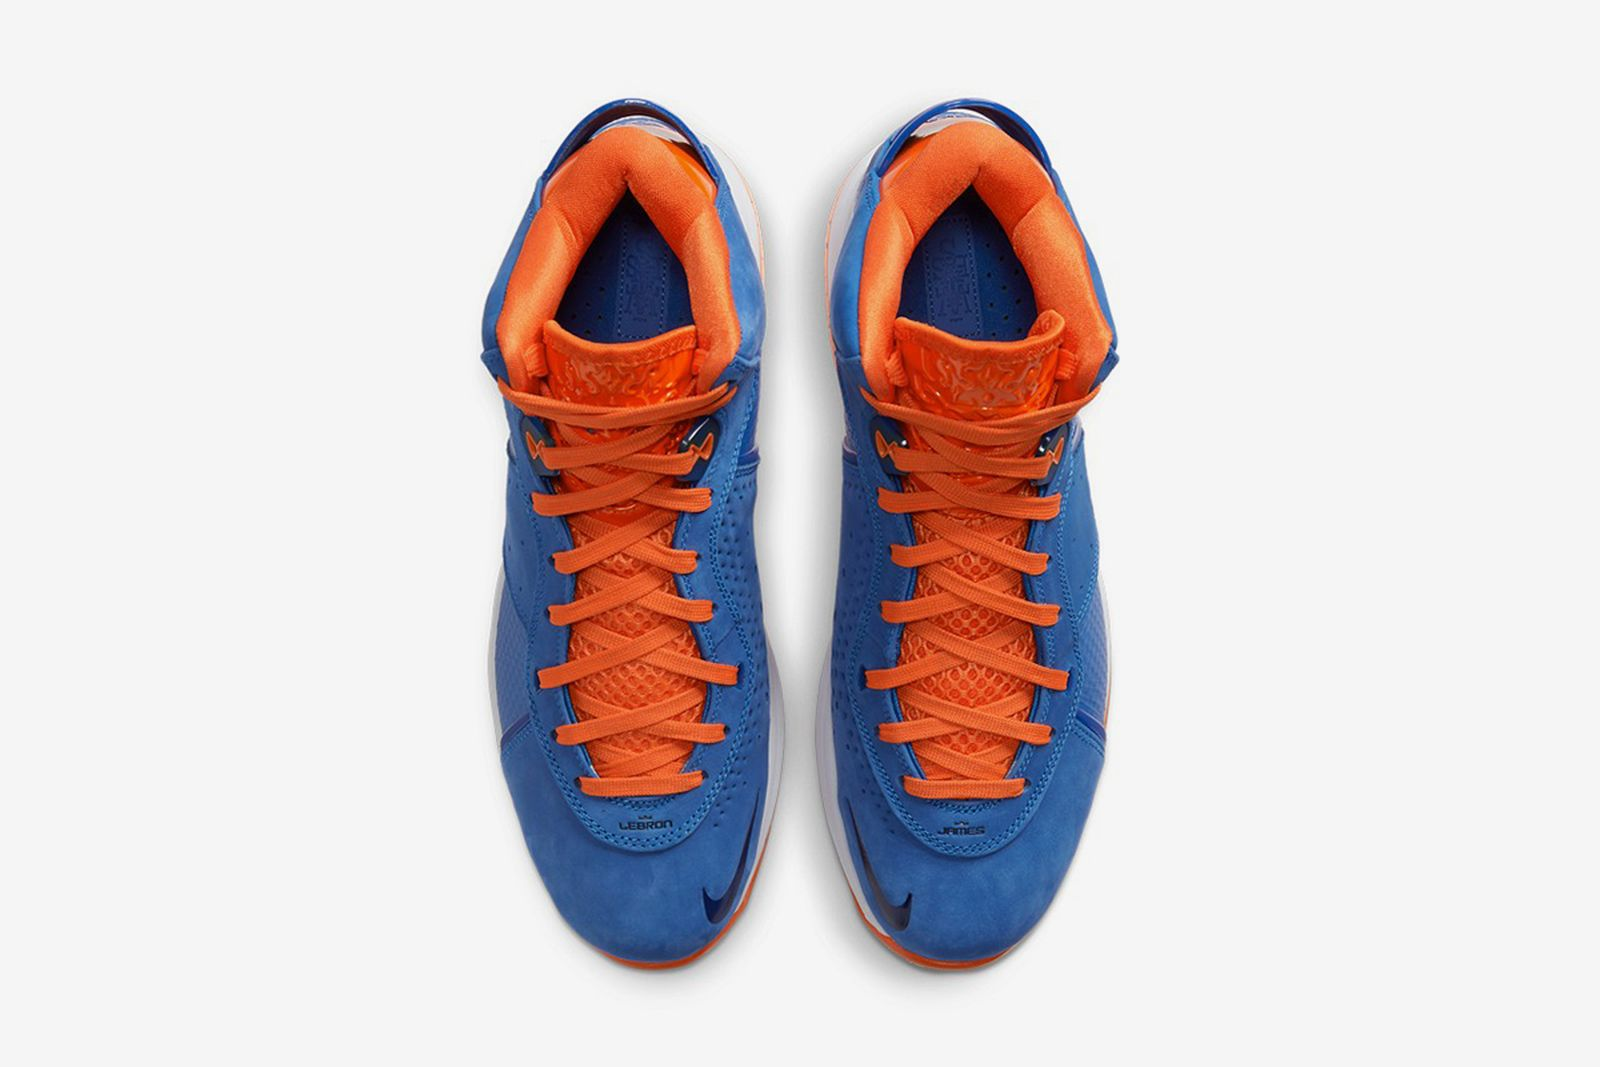 daily-sneaker-news-04-06-2021-2-04